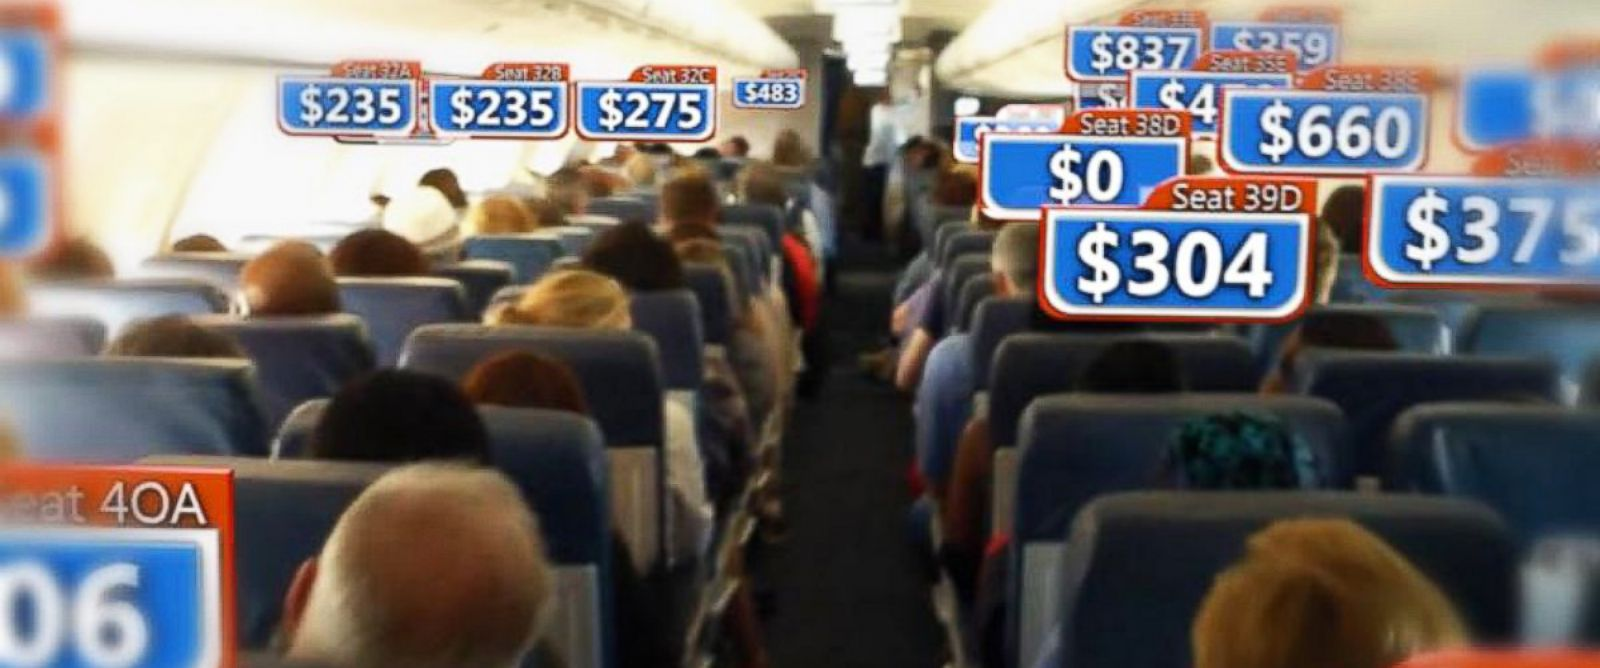 PHOTO: Study shows you might be paying up to eight times more for your ticket compared to other passengers.